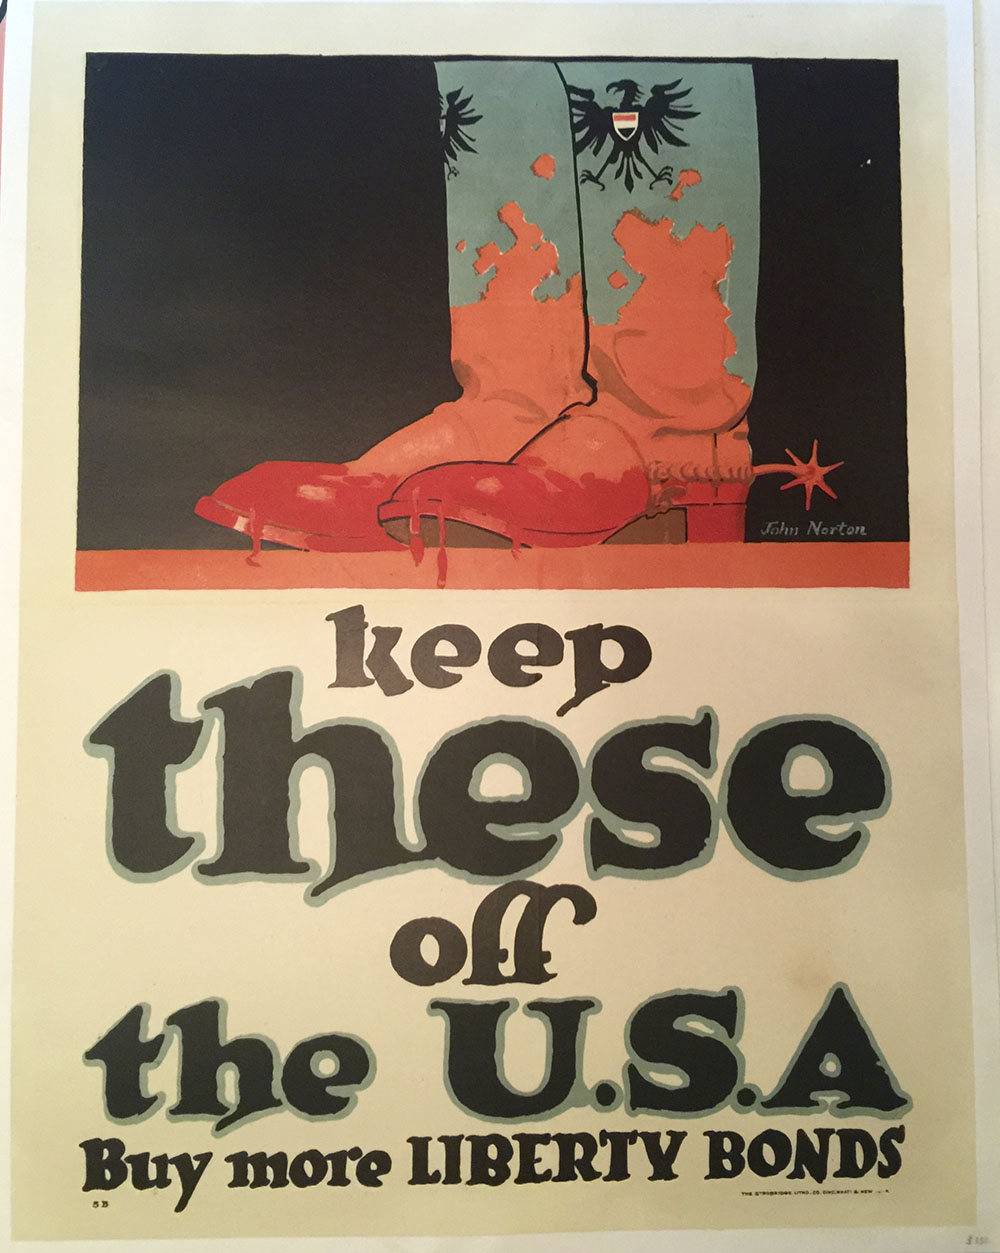 WWI-Era Liberty Bonds Poster